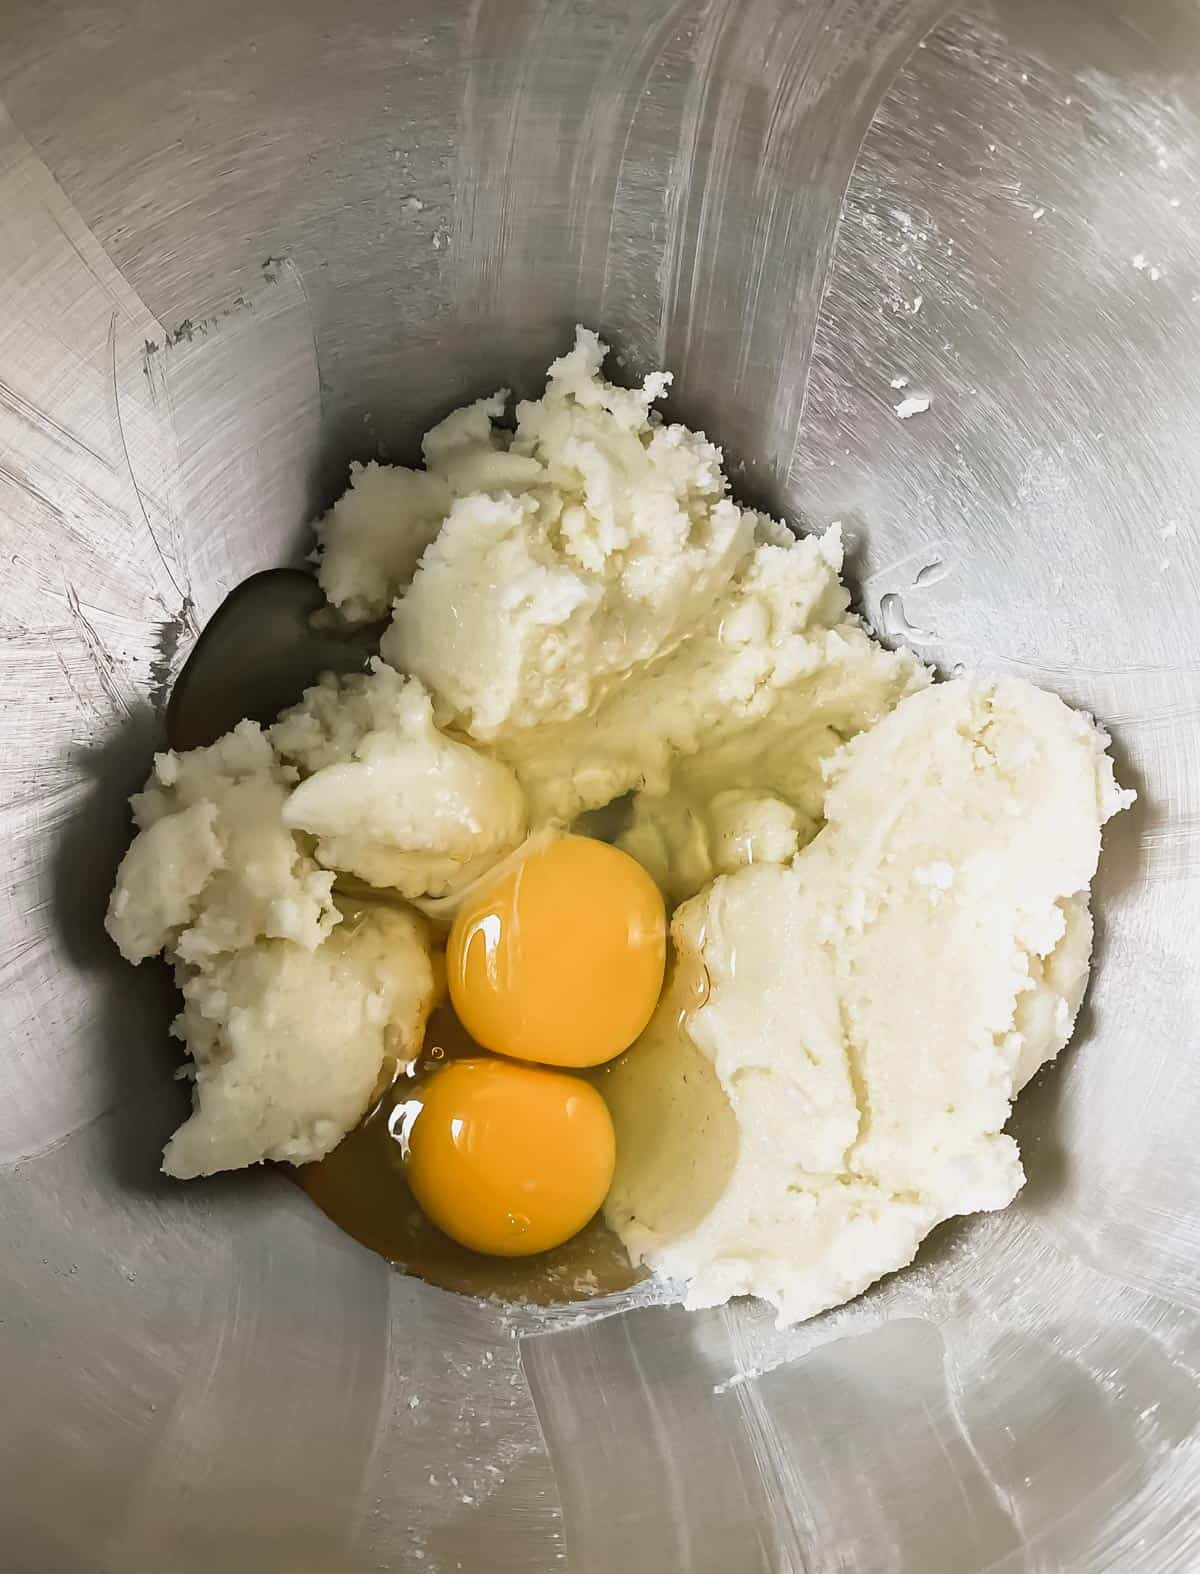 Beaten butter and sugar in a mixing bowl with 2 cracked eggs on top.